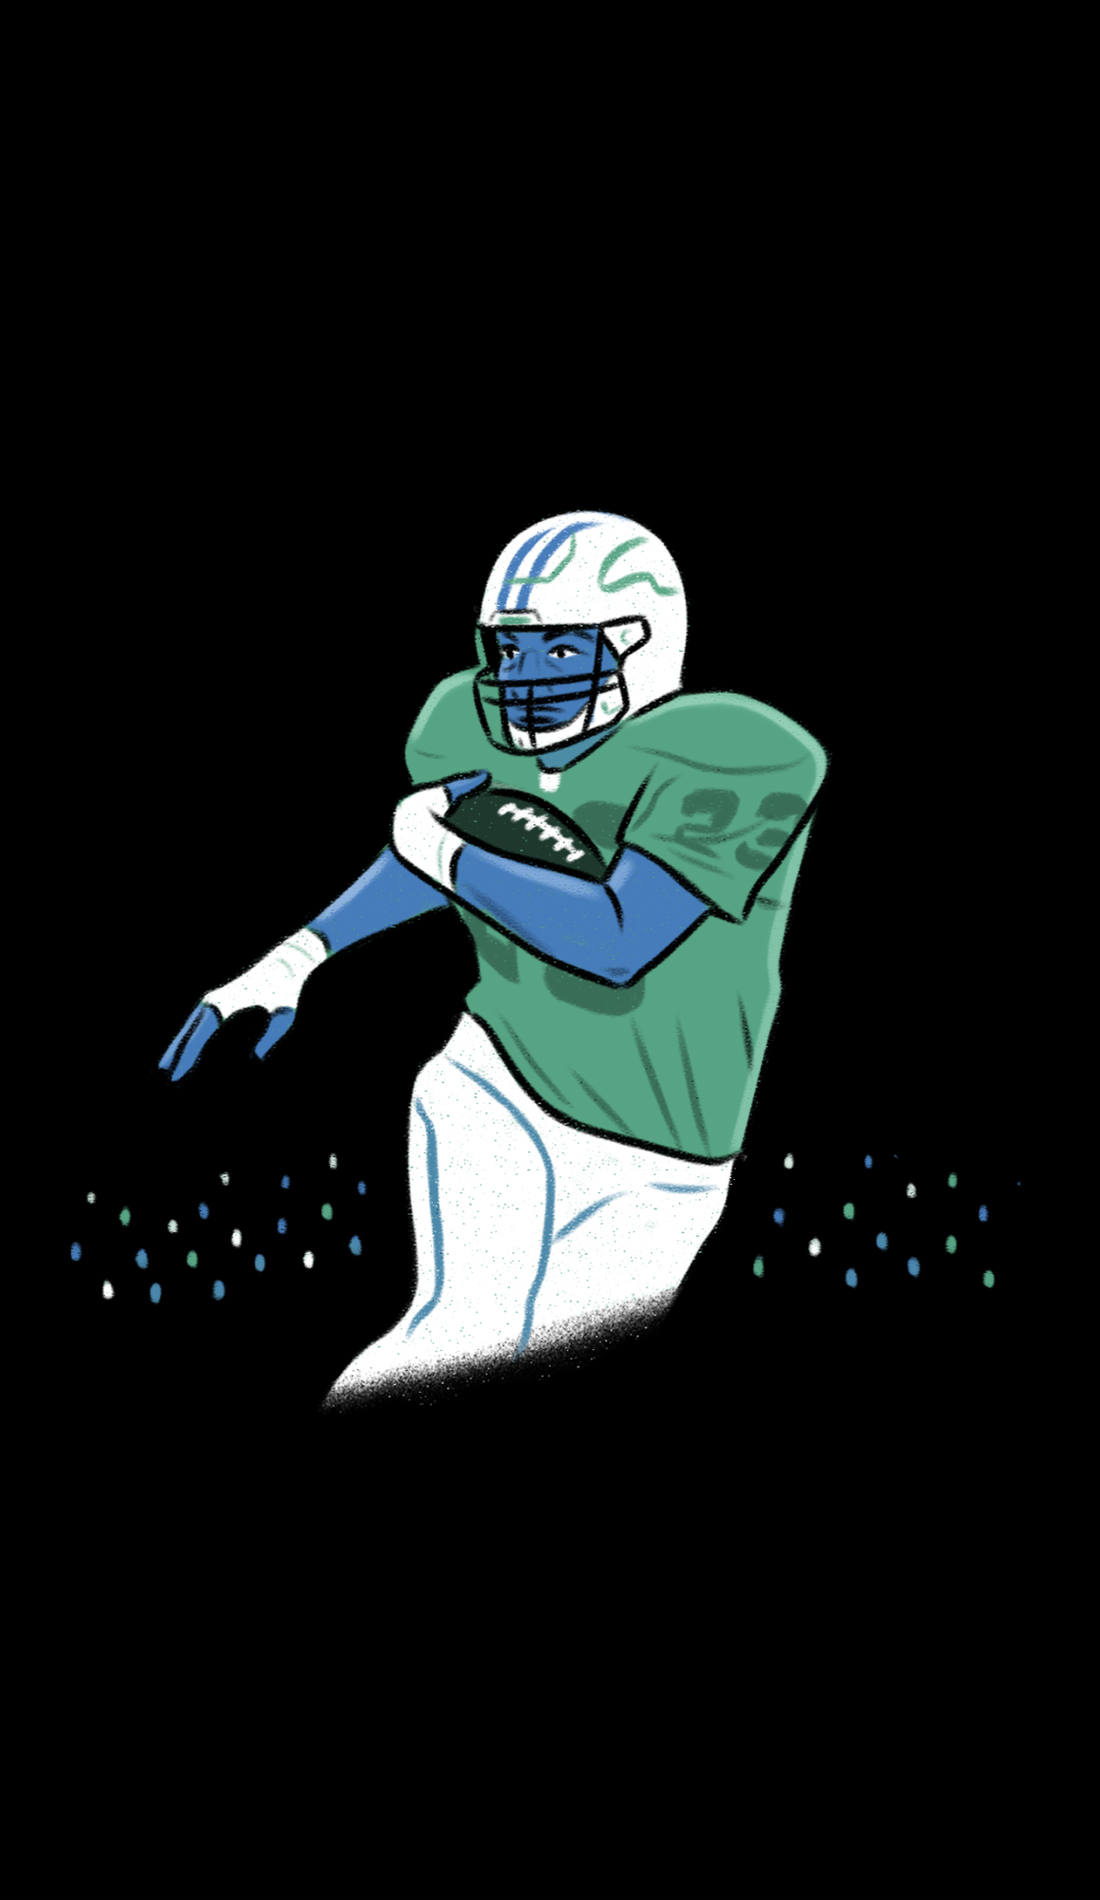 A Montreal Alouettes live event